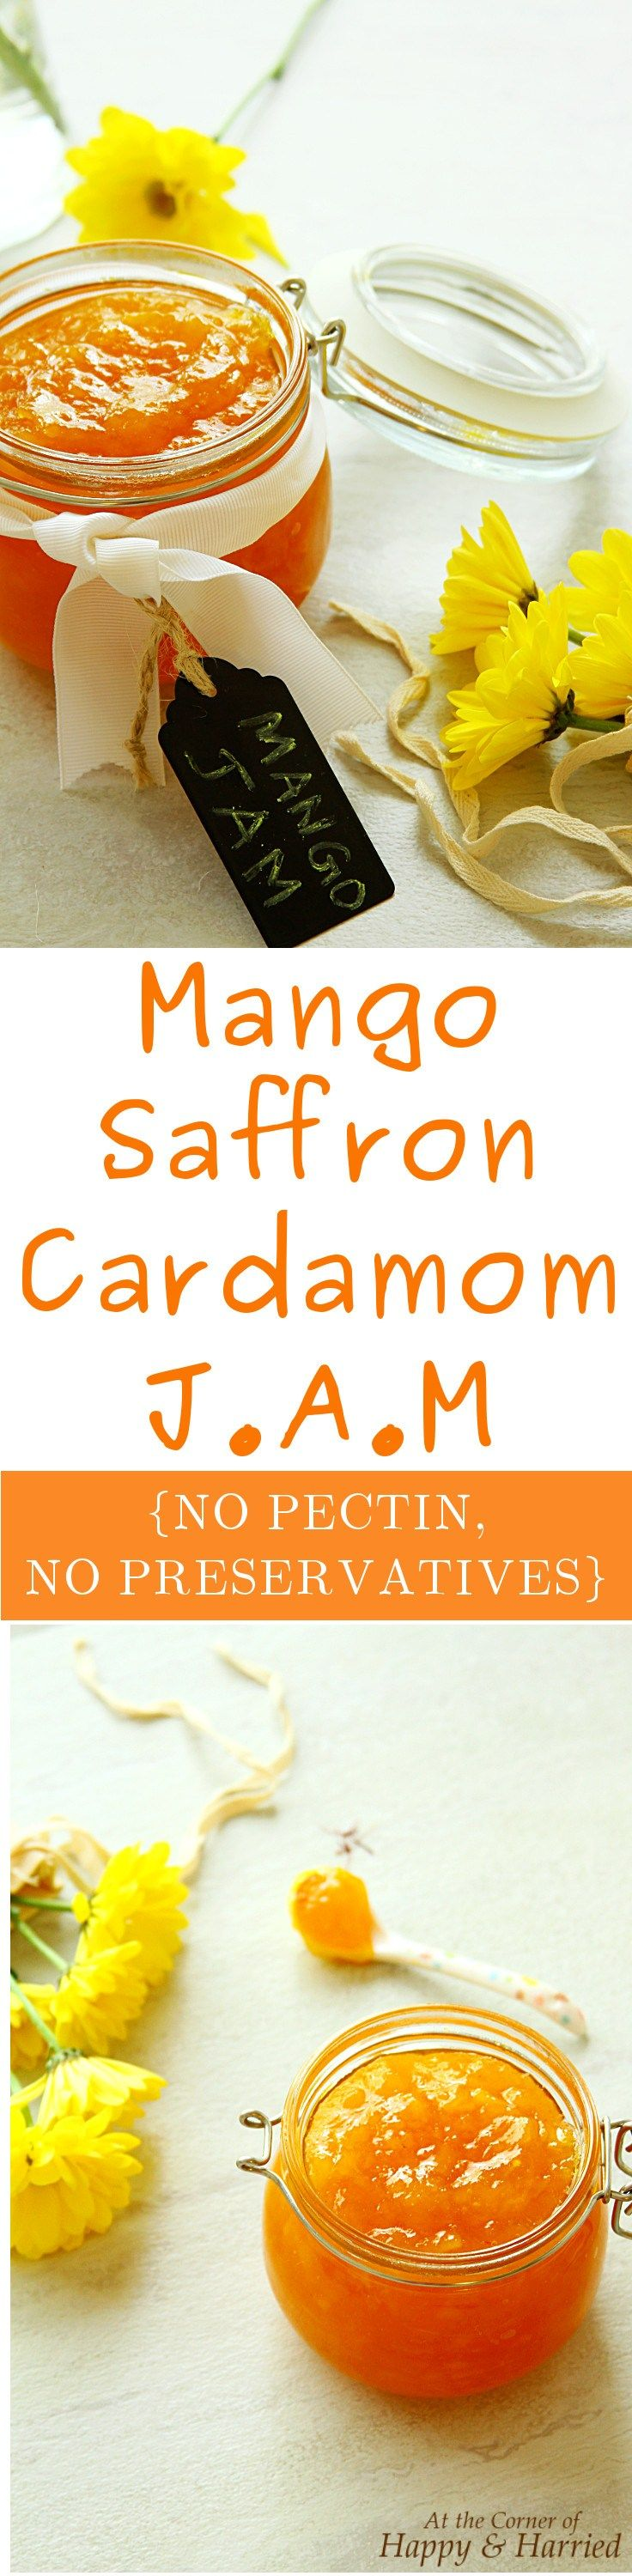 MANGO SAFFRON CARDAMOM JAM. A delicious homemade mango jam delicately flavored with saffron and cardamom. Make a batch using juicy, ripe golden mangoes and savor them till the season is long past. Make this no pectin, no preservative, refrigerator jam rec